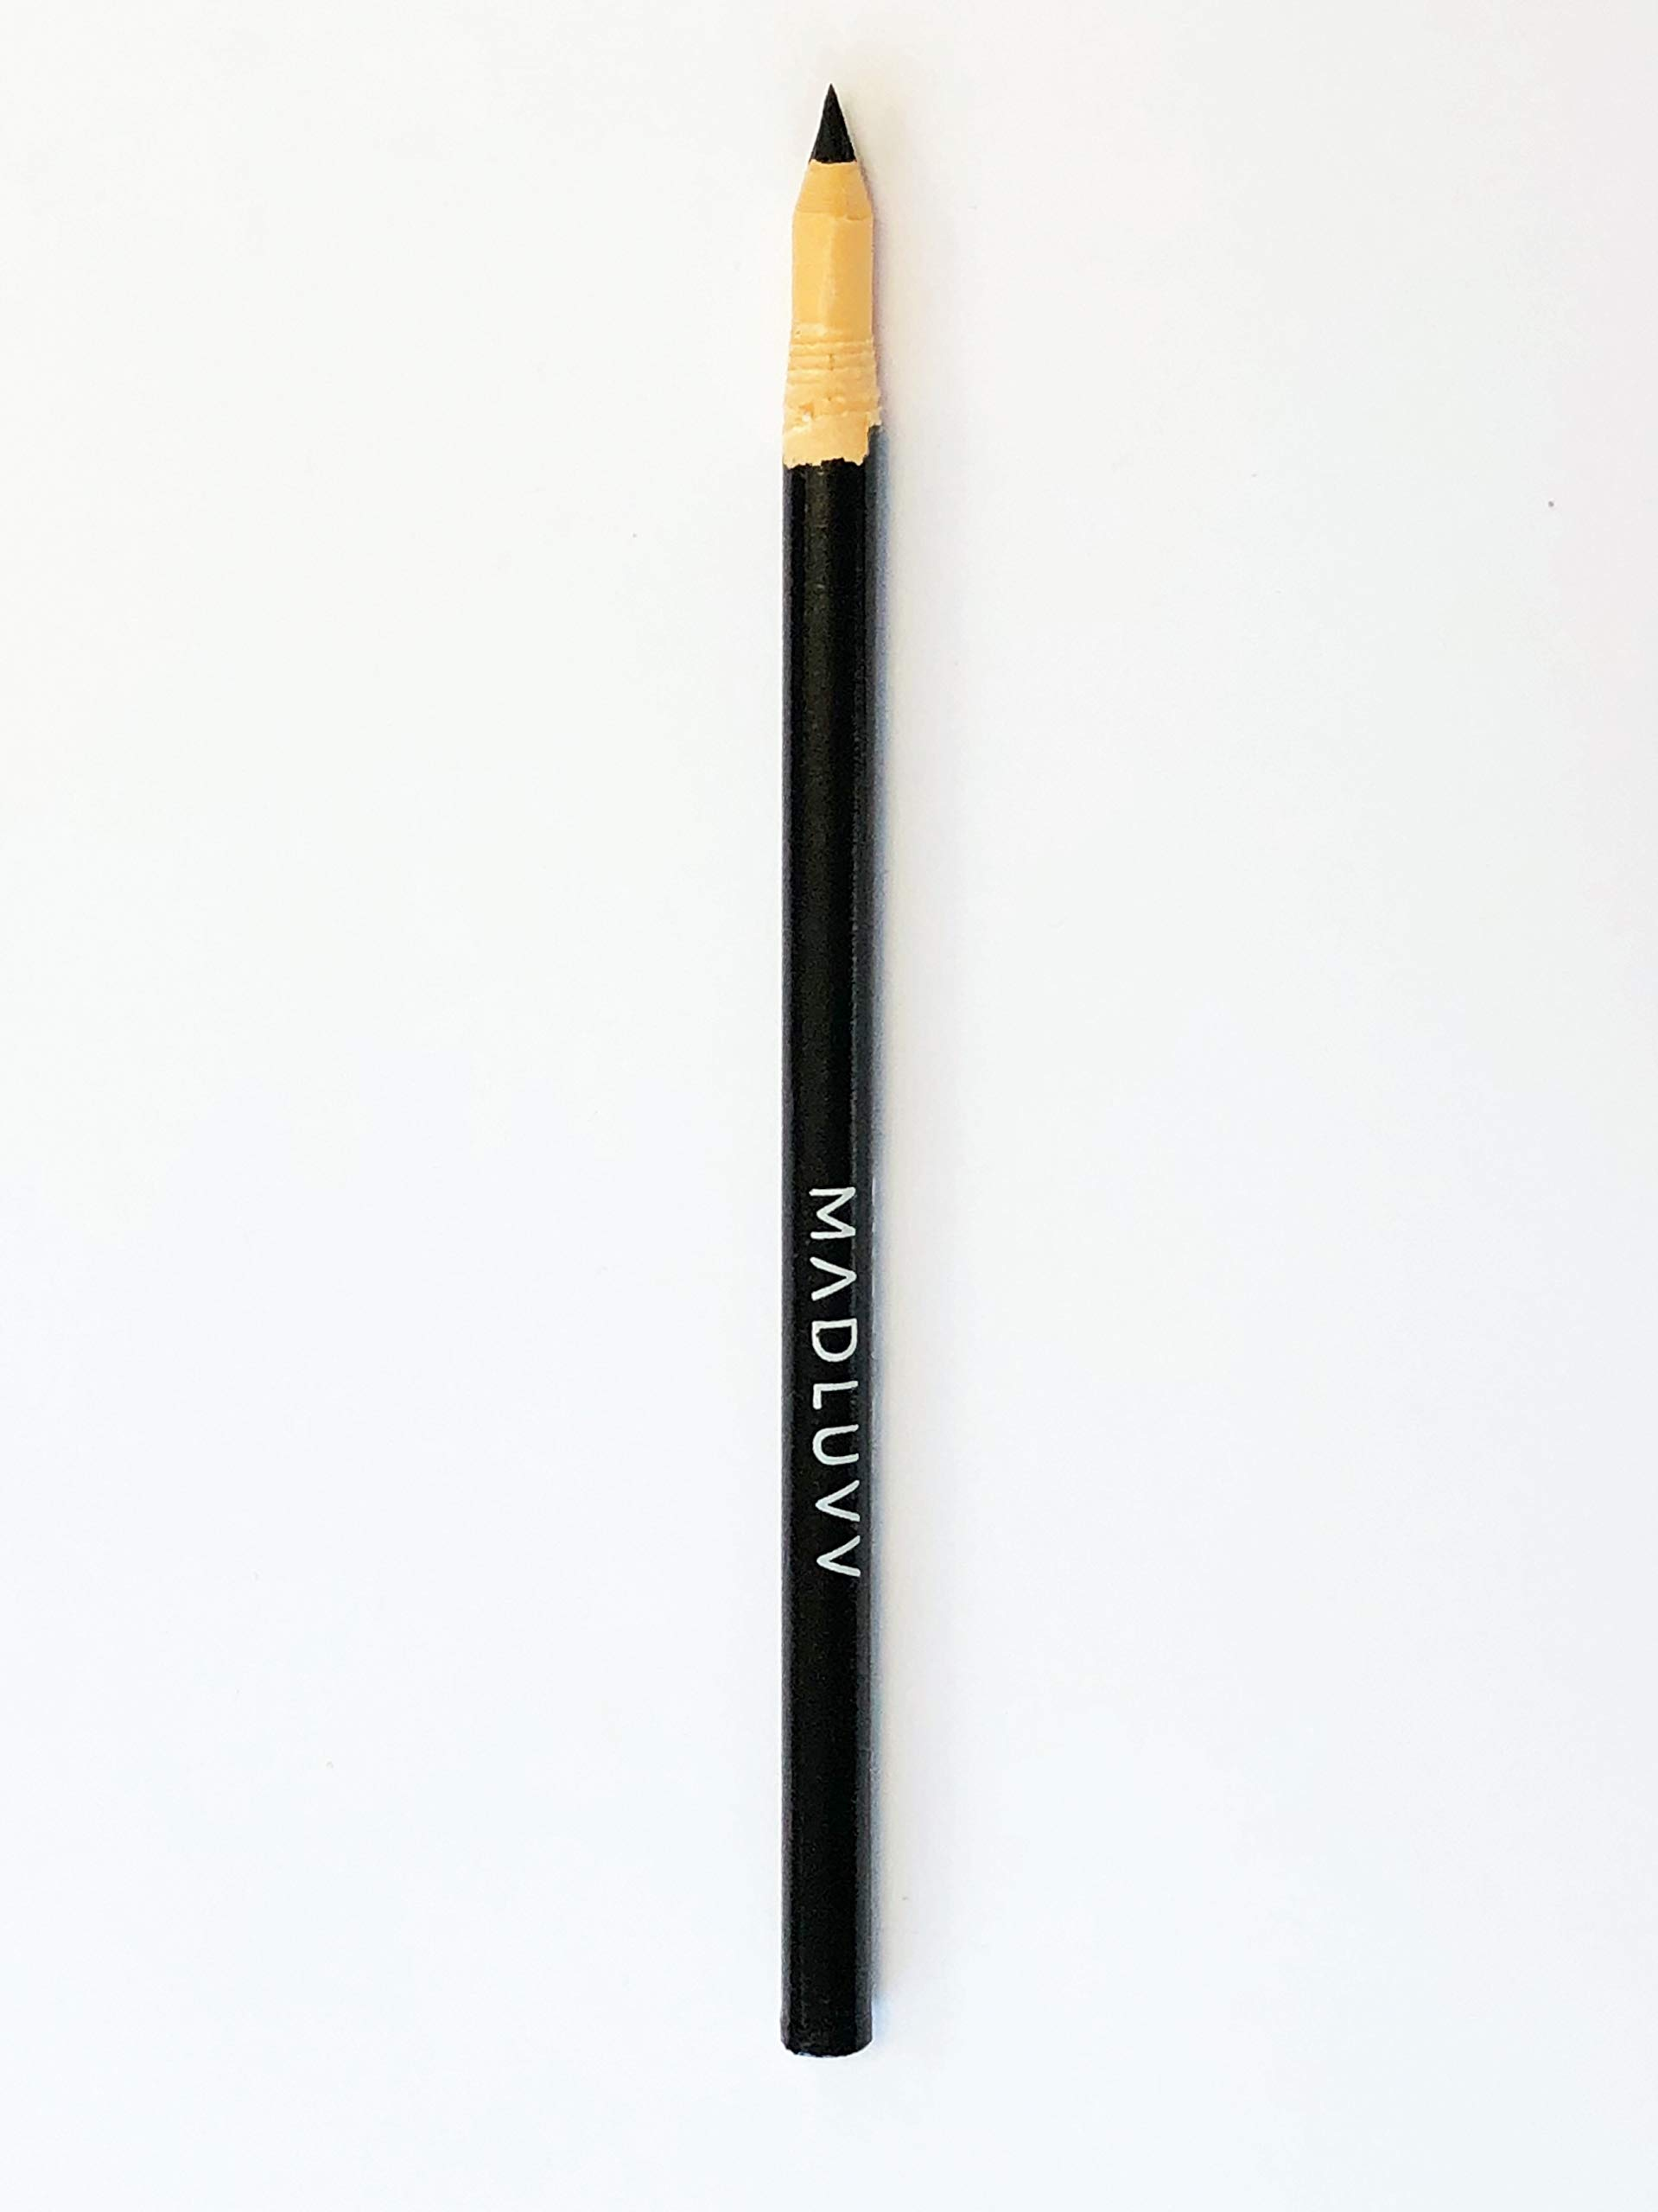 Best Microblading Pre Draw Pencils, Black with Sharpener (3 Pack) by MADLUVV (Image #4)